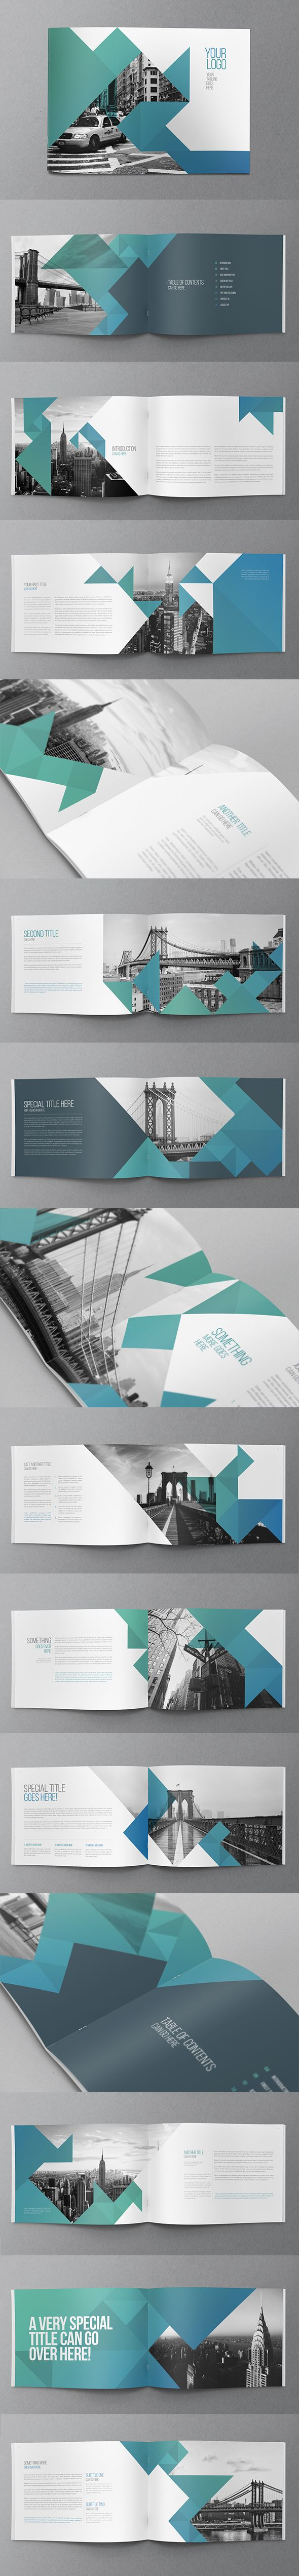 Cool Modern Brochure. Download here: http://graphicriver.net/item/cool-modern-brochure/11532759?ref=abradesign #design #brochure